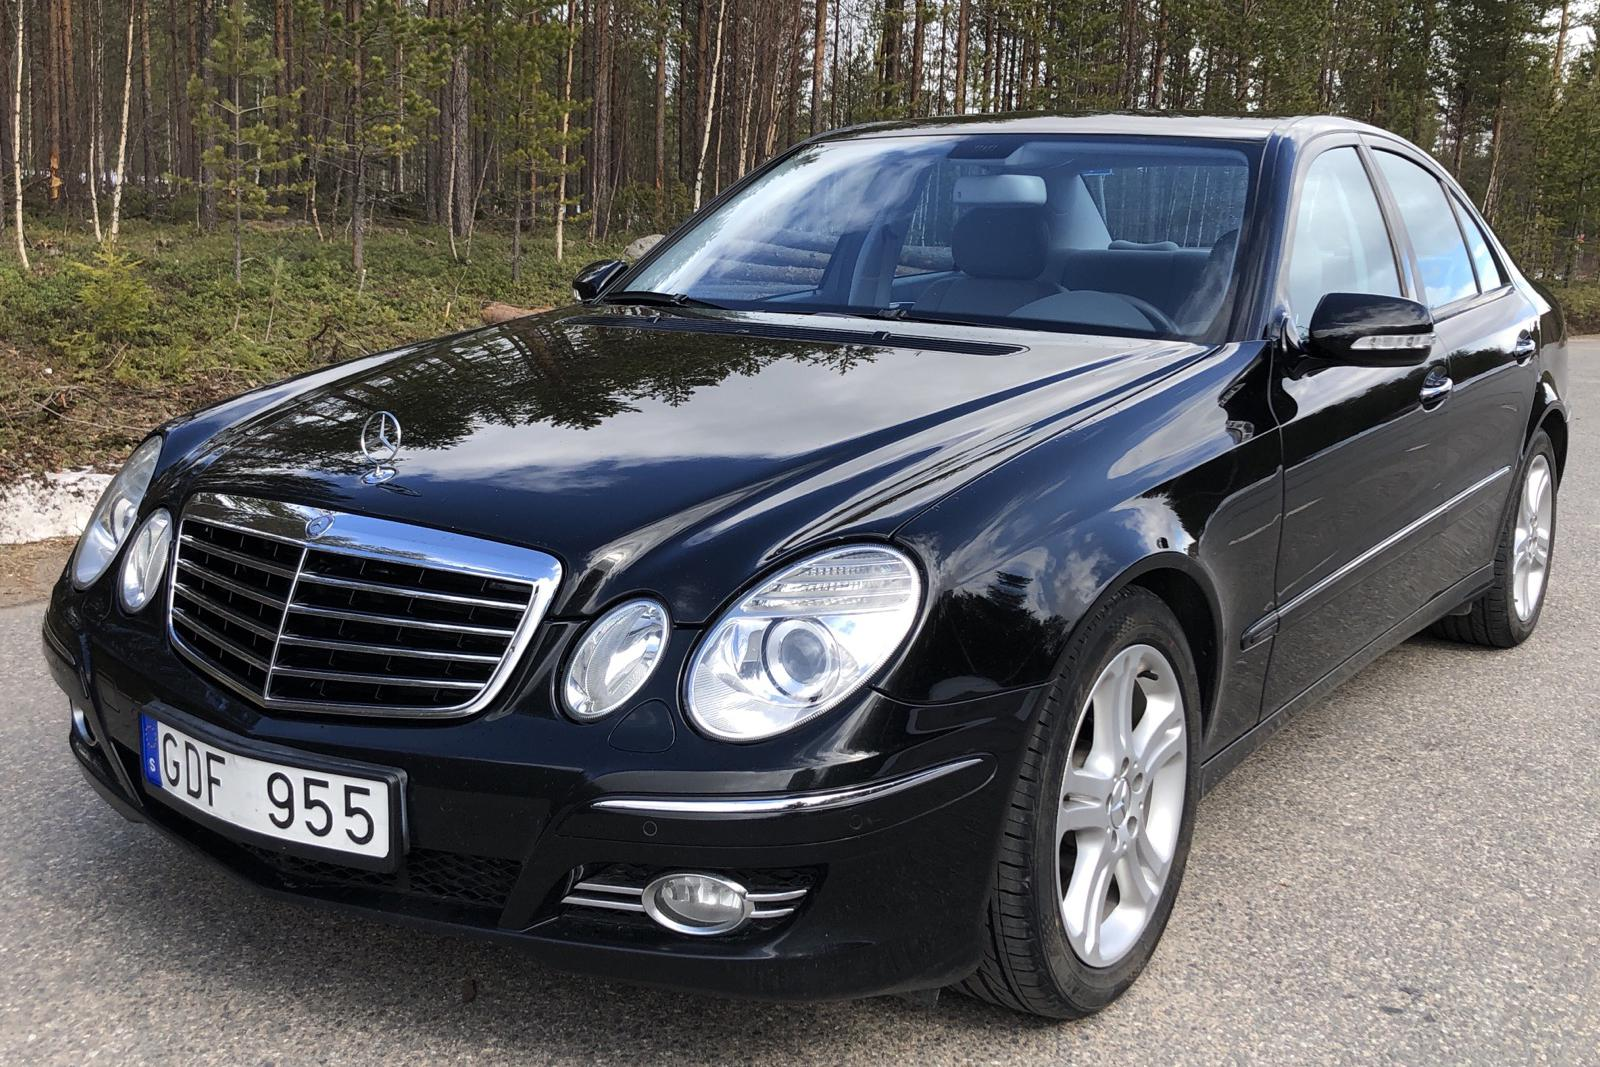 Mercedes E 200 Kompressor W211 (184hk) - 182 350 km - Automatic - black - 2007